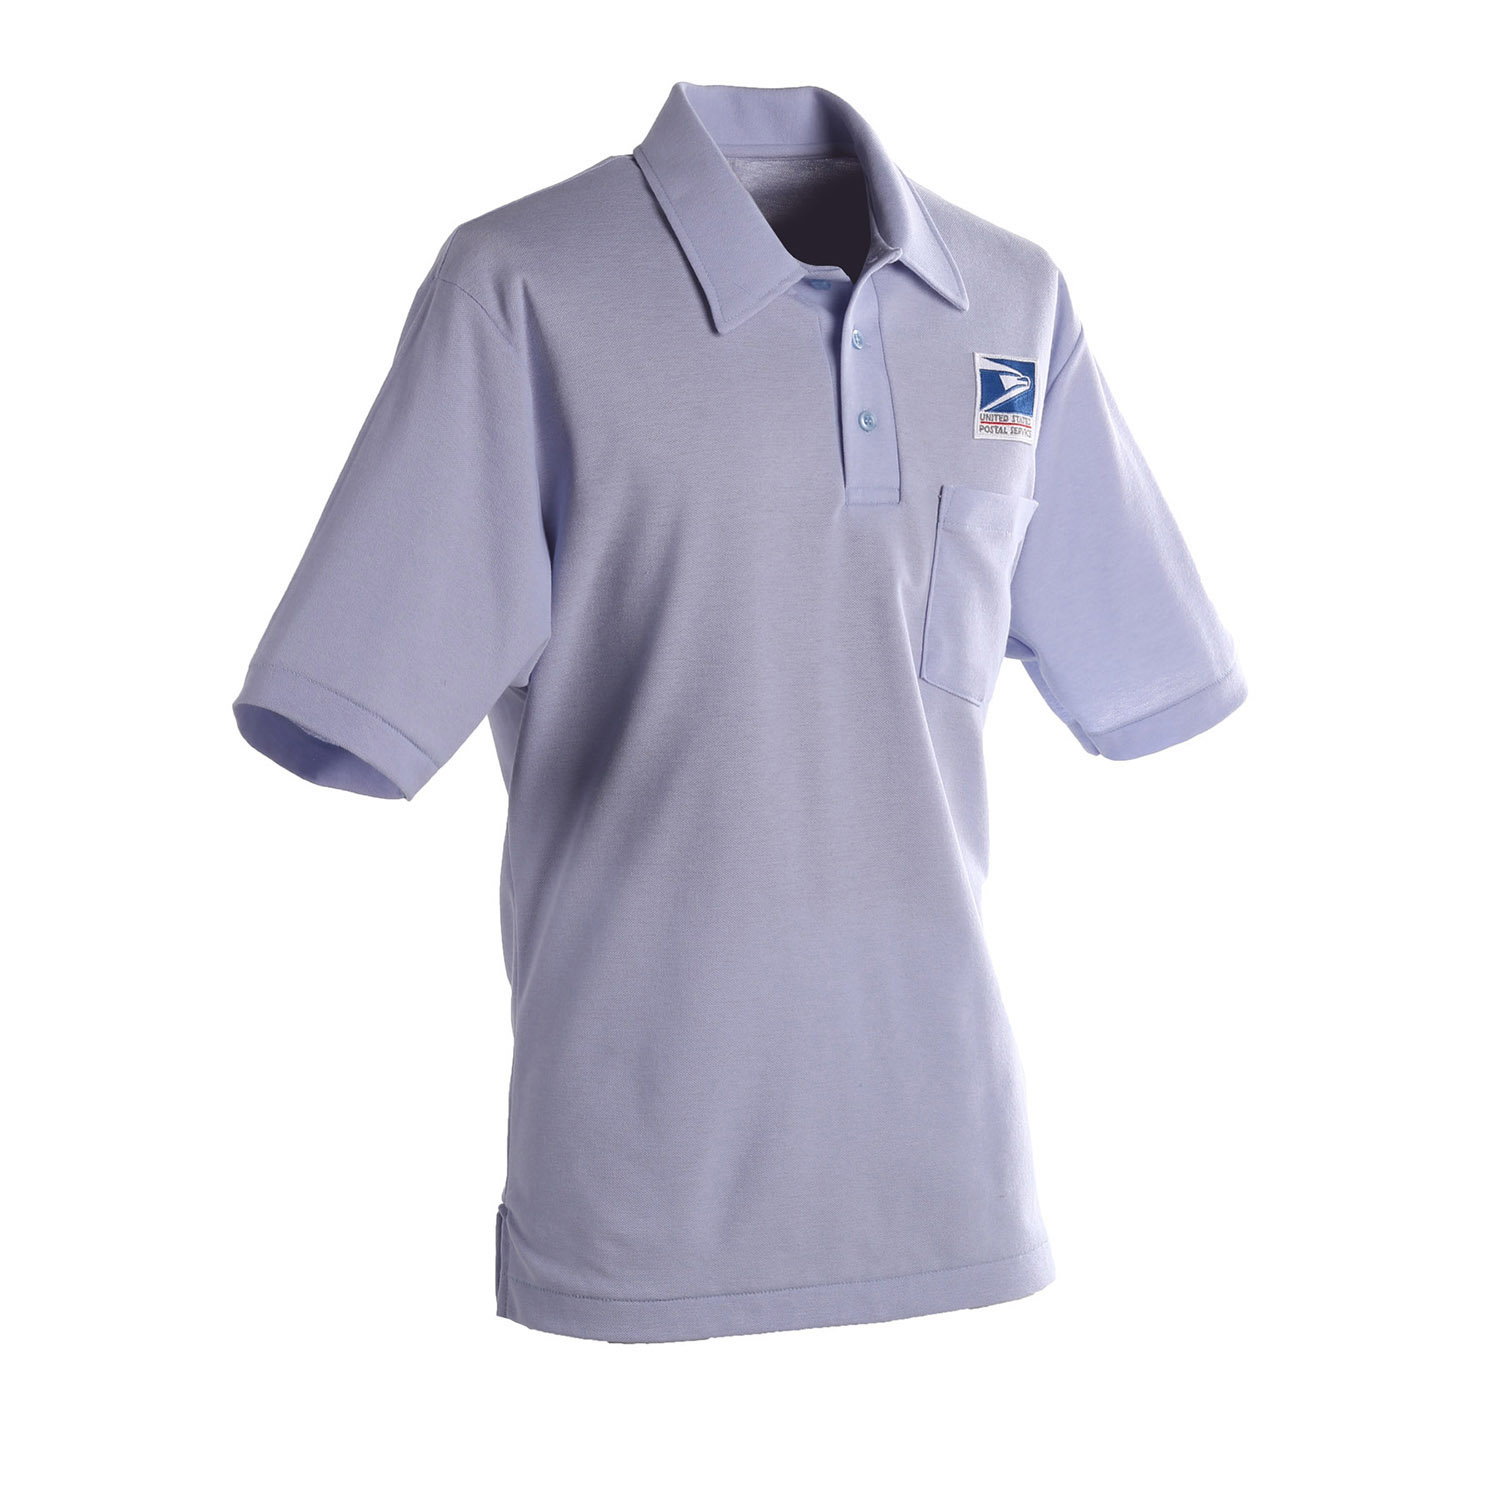 Embroidered Polo Shirts Cheap No Minimum